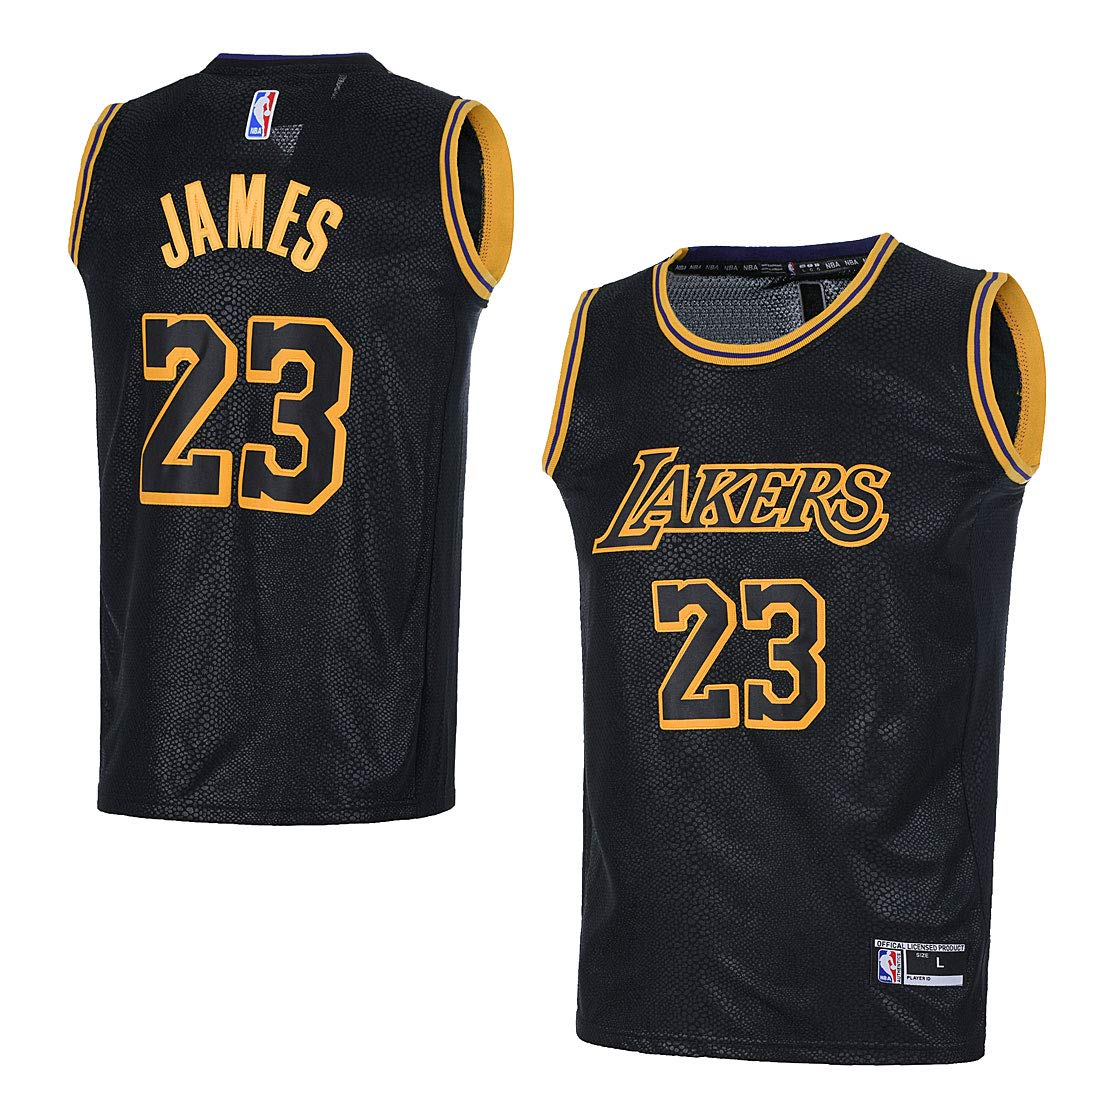 8111b0ea6 Amazon.com: OuterStuff Youth Los Angeles Lakers #23 LeBron James Kids  Basketball Jersey: Clothing